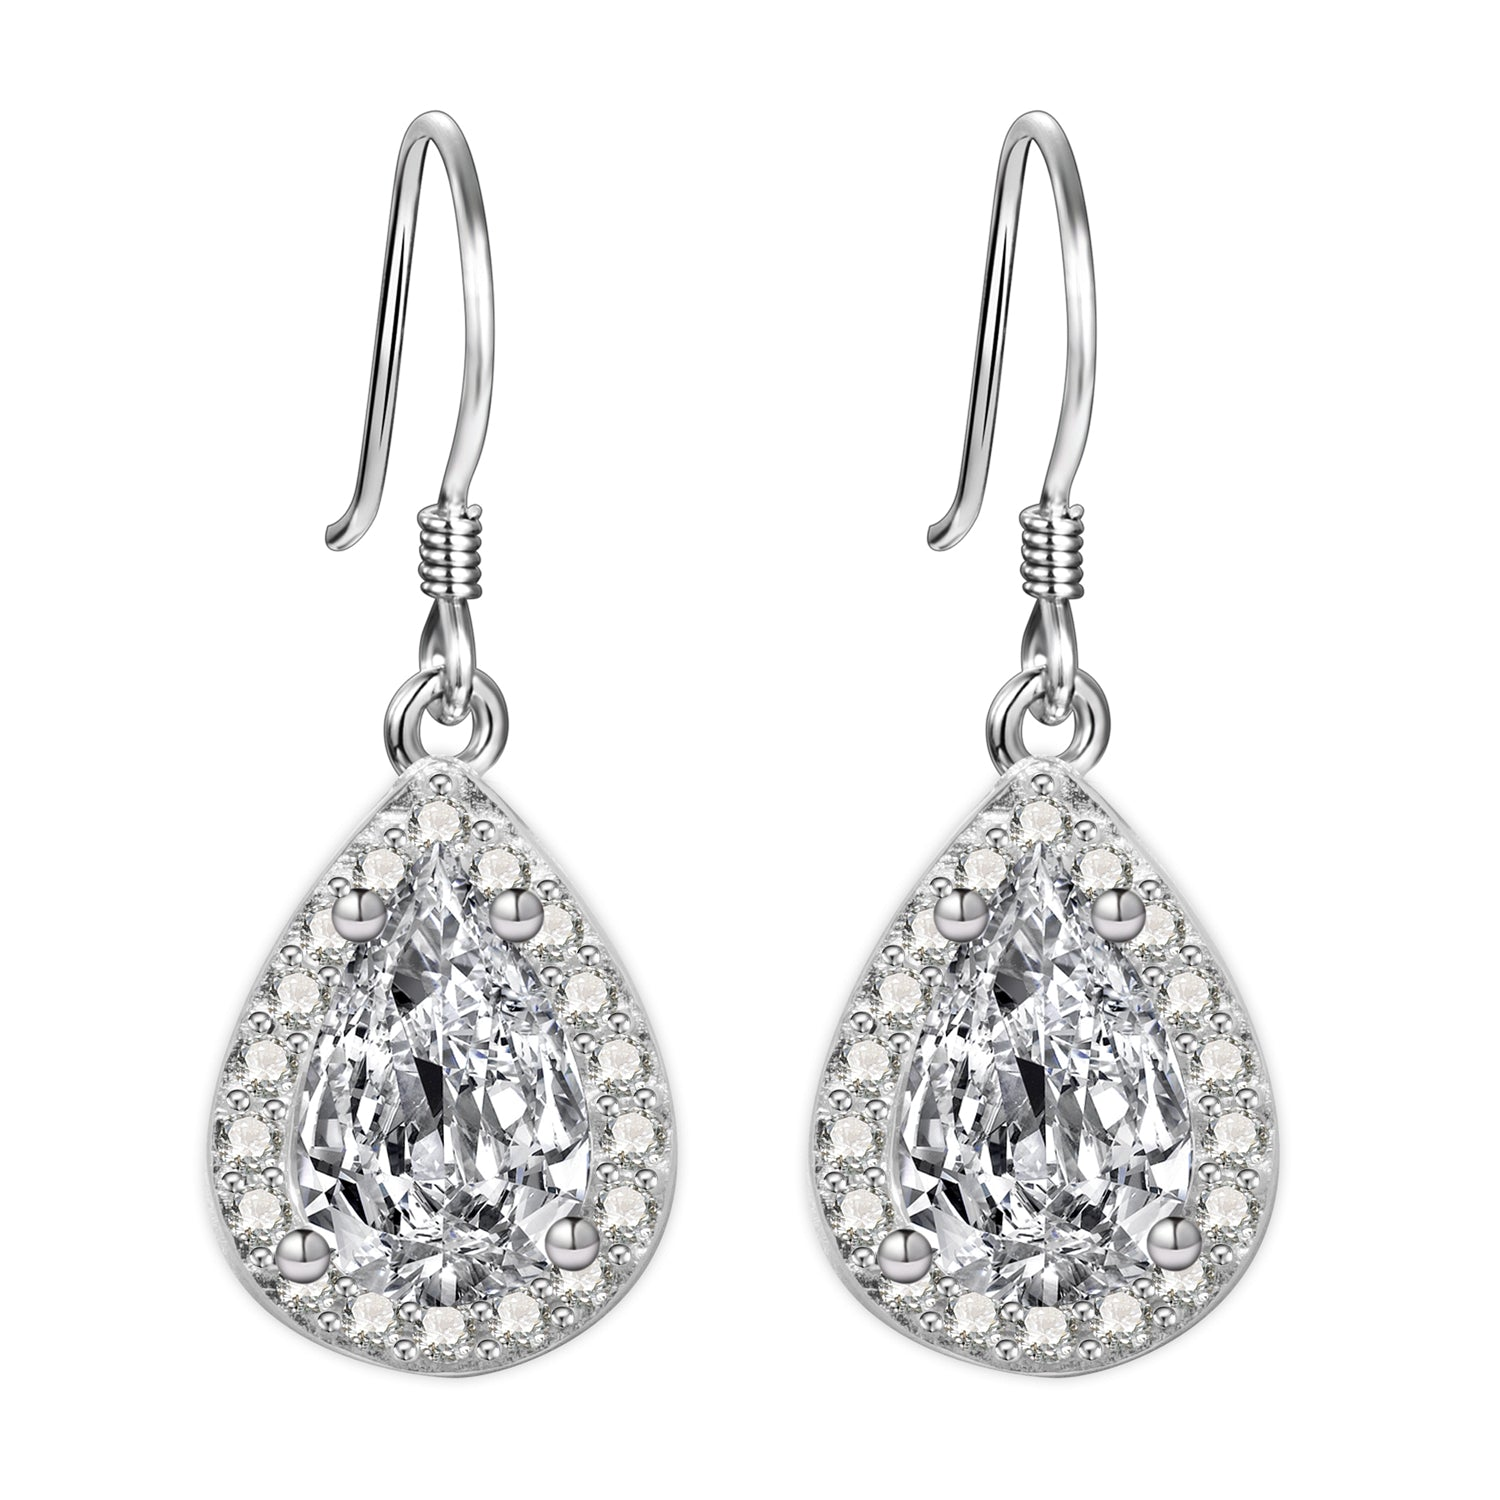 Alanna Sterling Silver Earrings With Swarovski